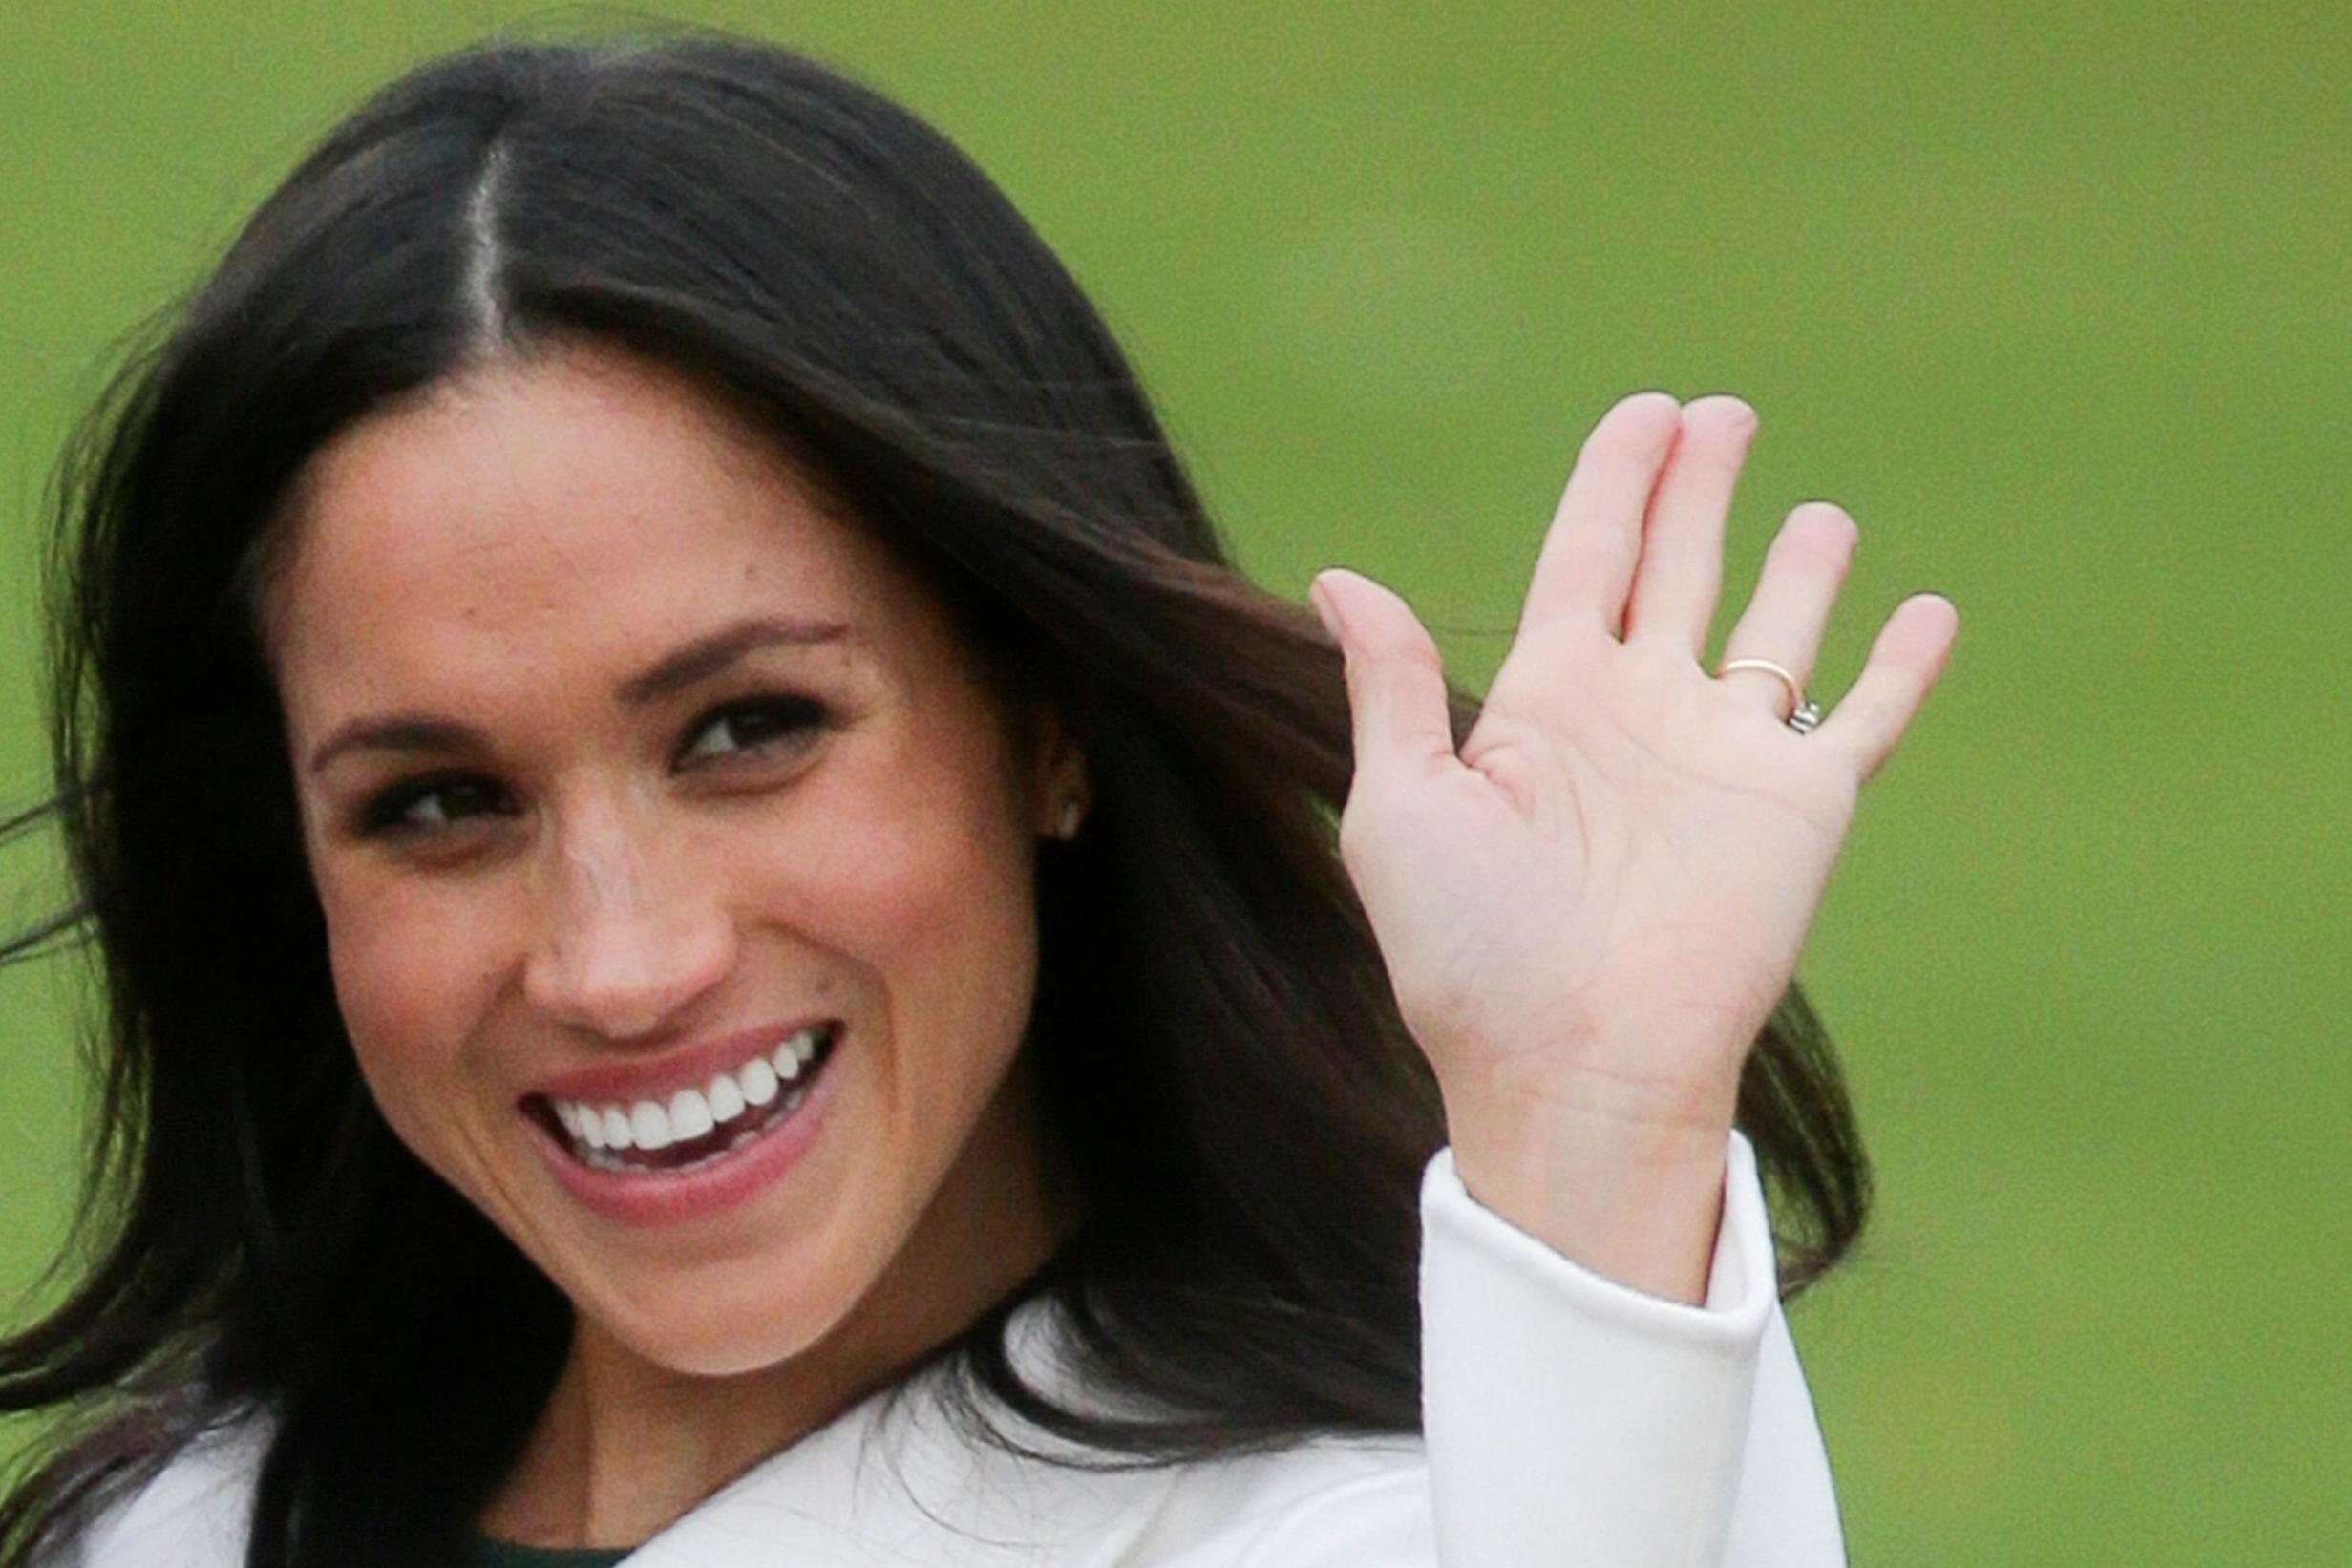 Bookies have stopped taking bets on who will design Meghan Markle's dress after a surge in bets